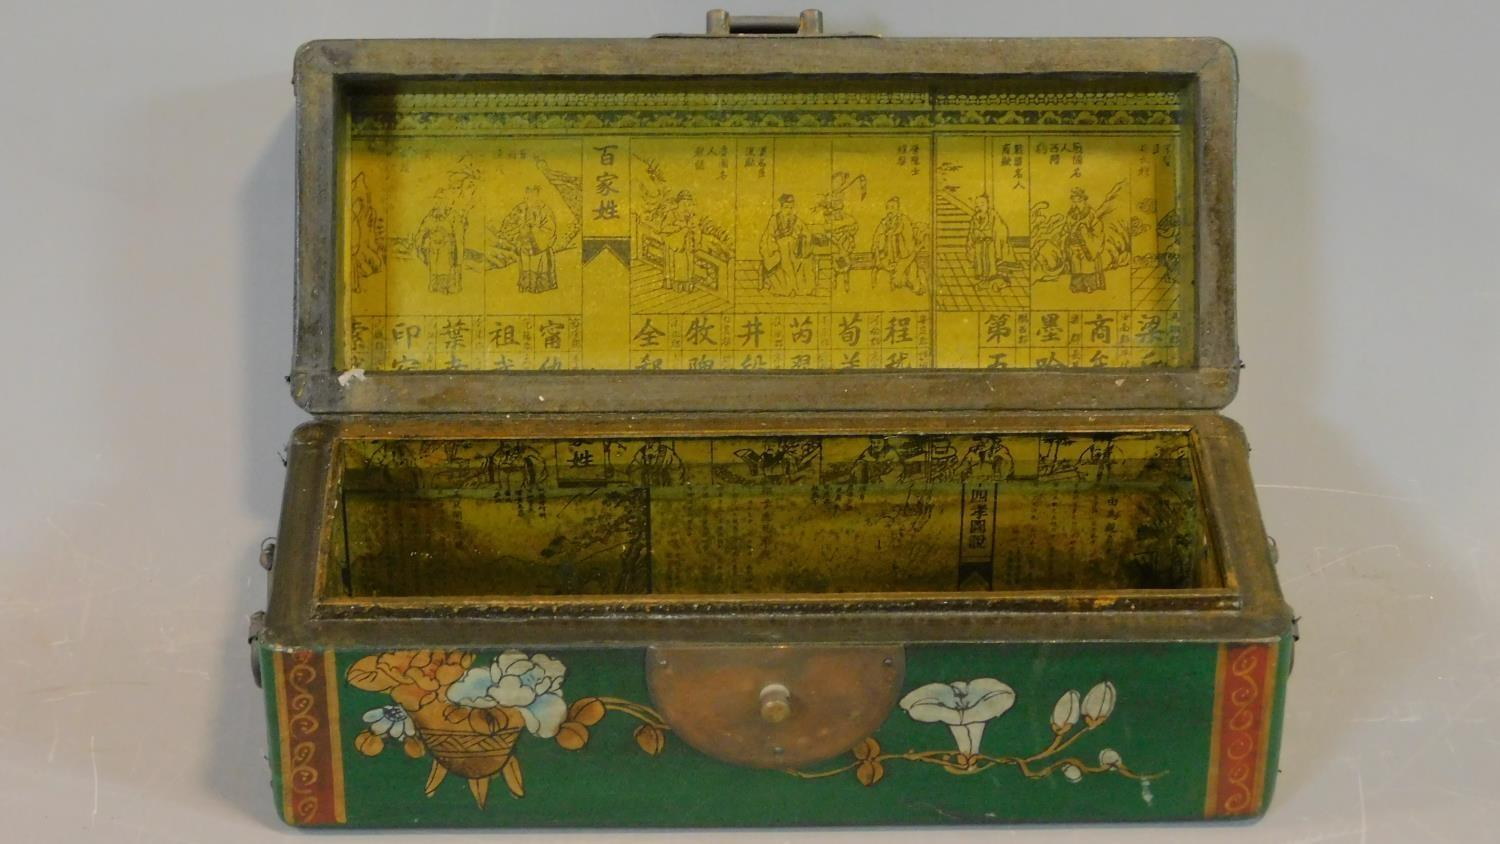 A green painted and lacquered Chinese box with floral motifs. H.12 W.28 D.11.5cm - Image 9 of 9